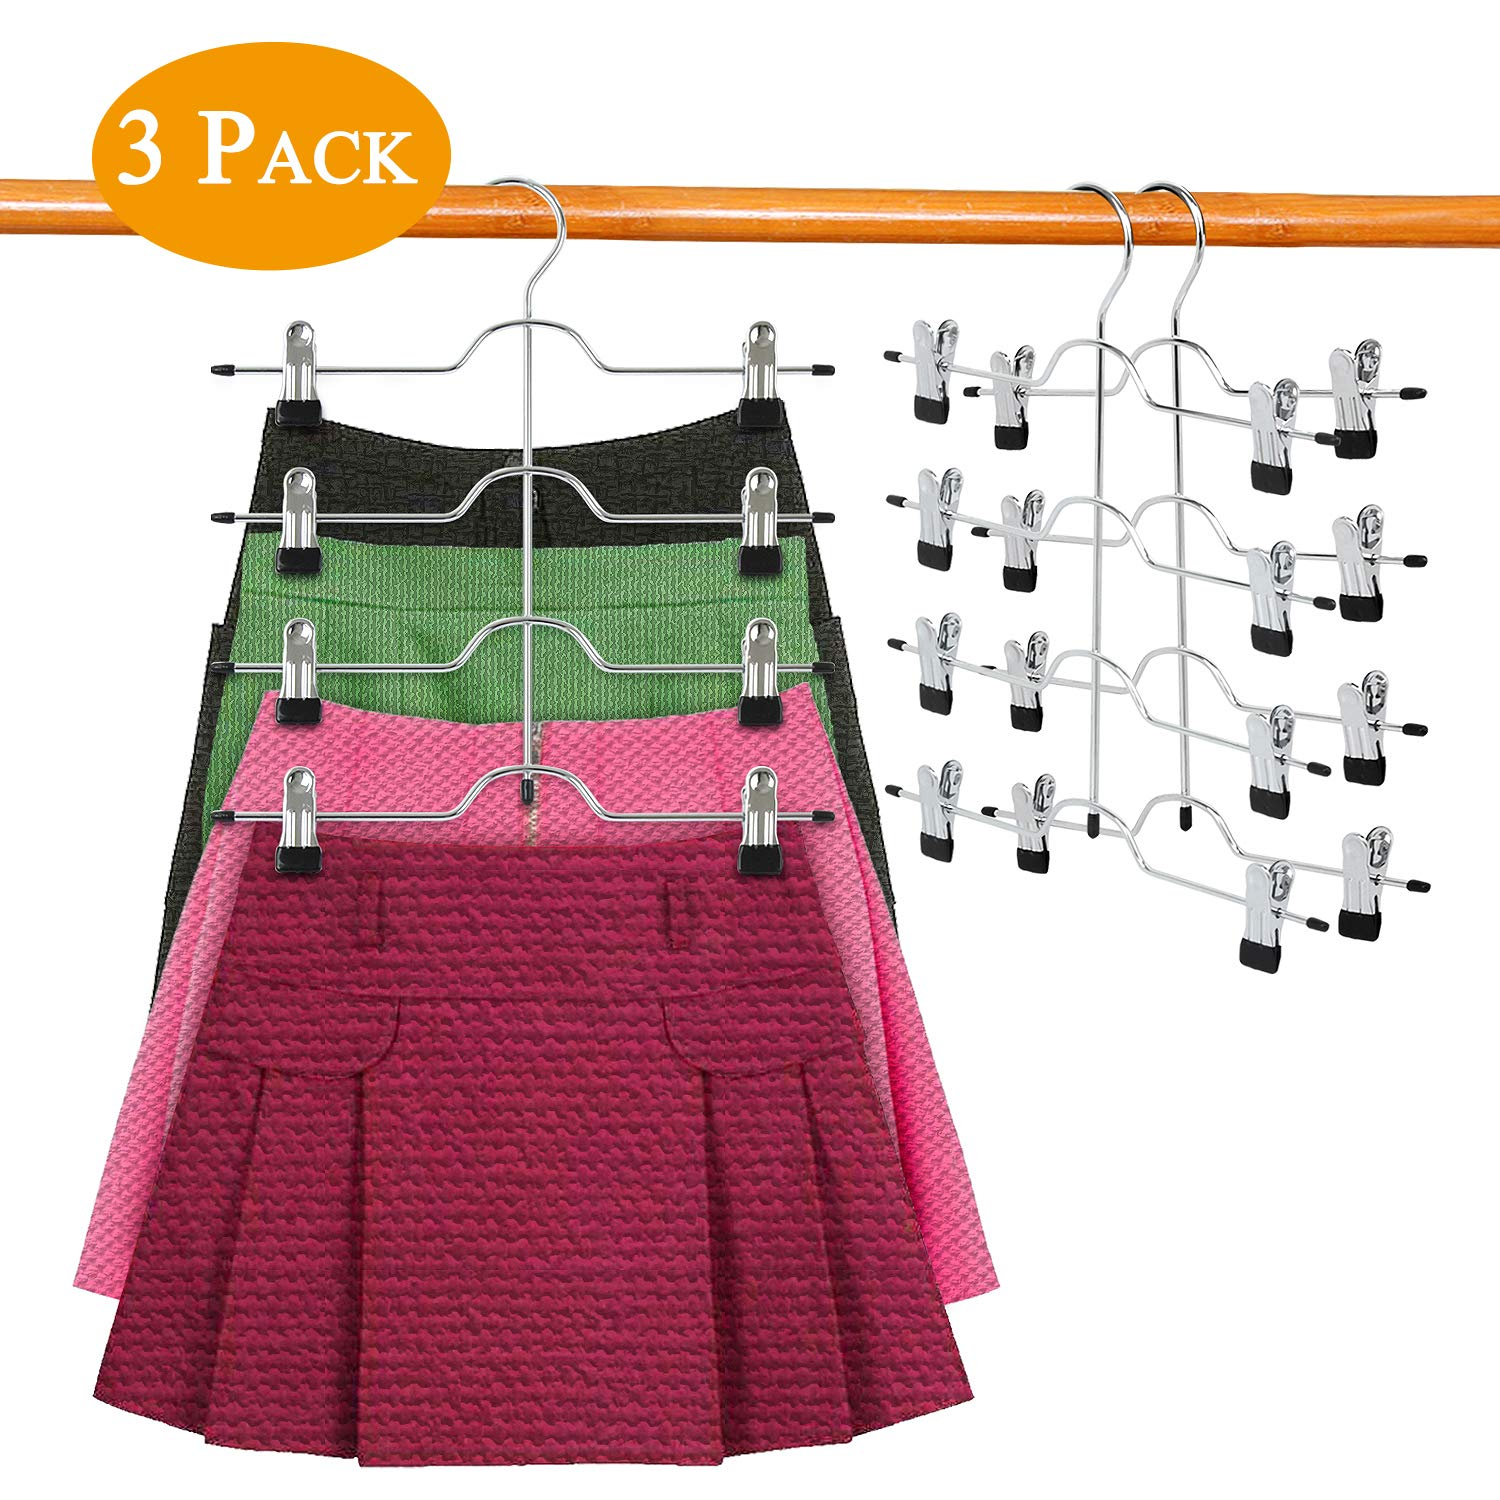 DOIOWN Skirt Hangers 4 Tier Pants Hangers Space Saving Hangers Closet Organizer for Skirt, Pants(3 Pieces) (3 Pieces) by DOIOWN